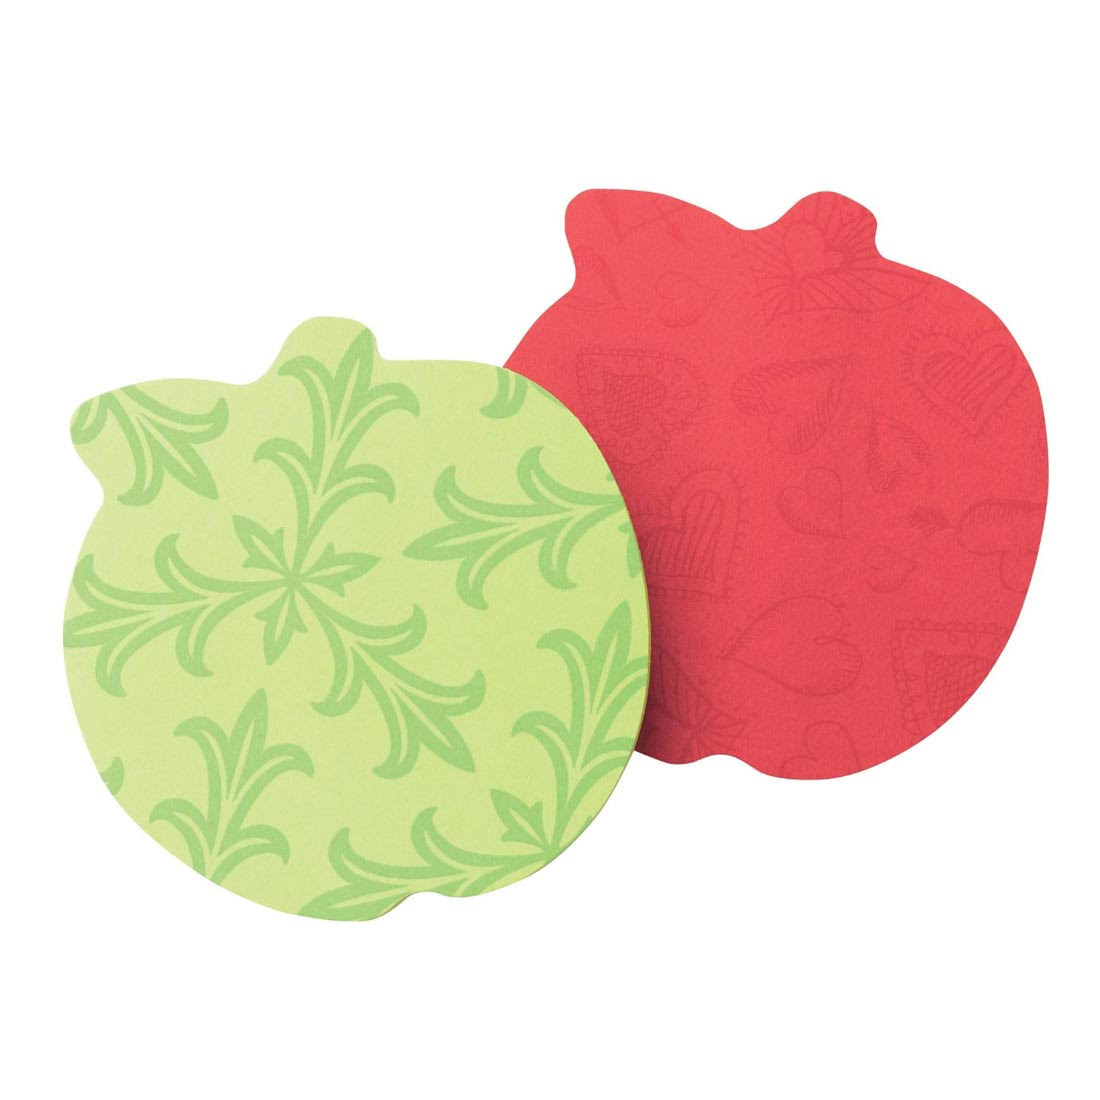 "Post-it Super Sticky Notes - Apple (3"" x 3"")"